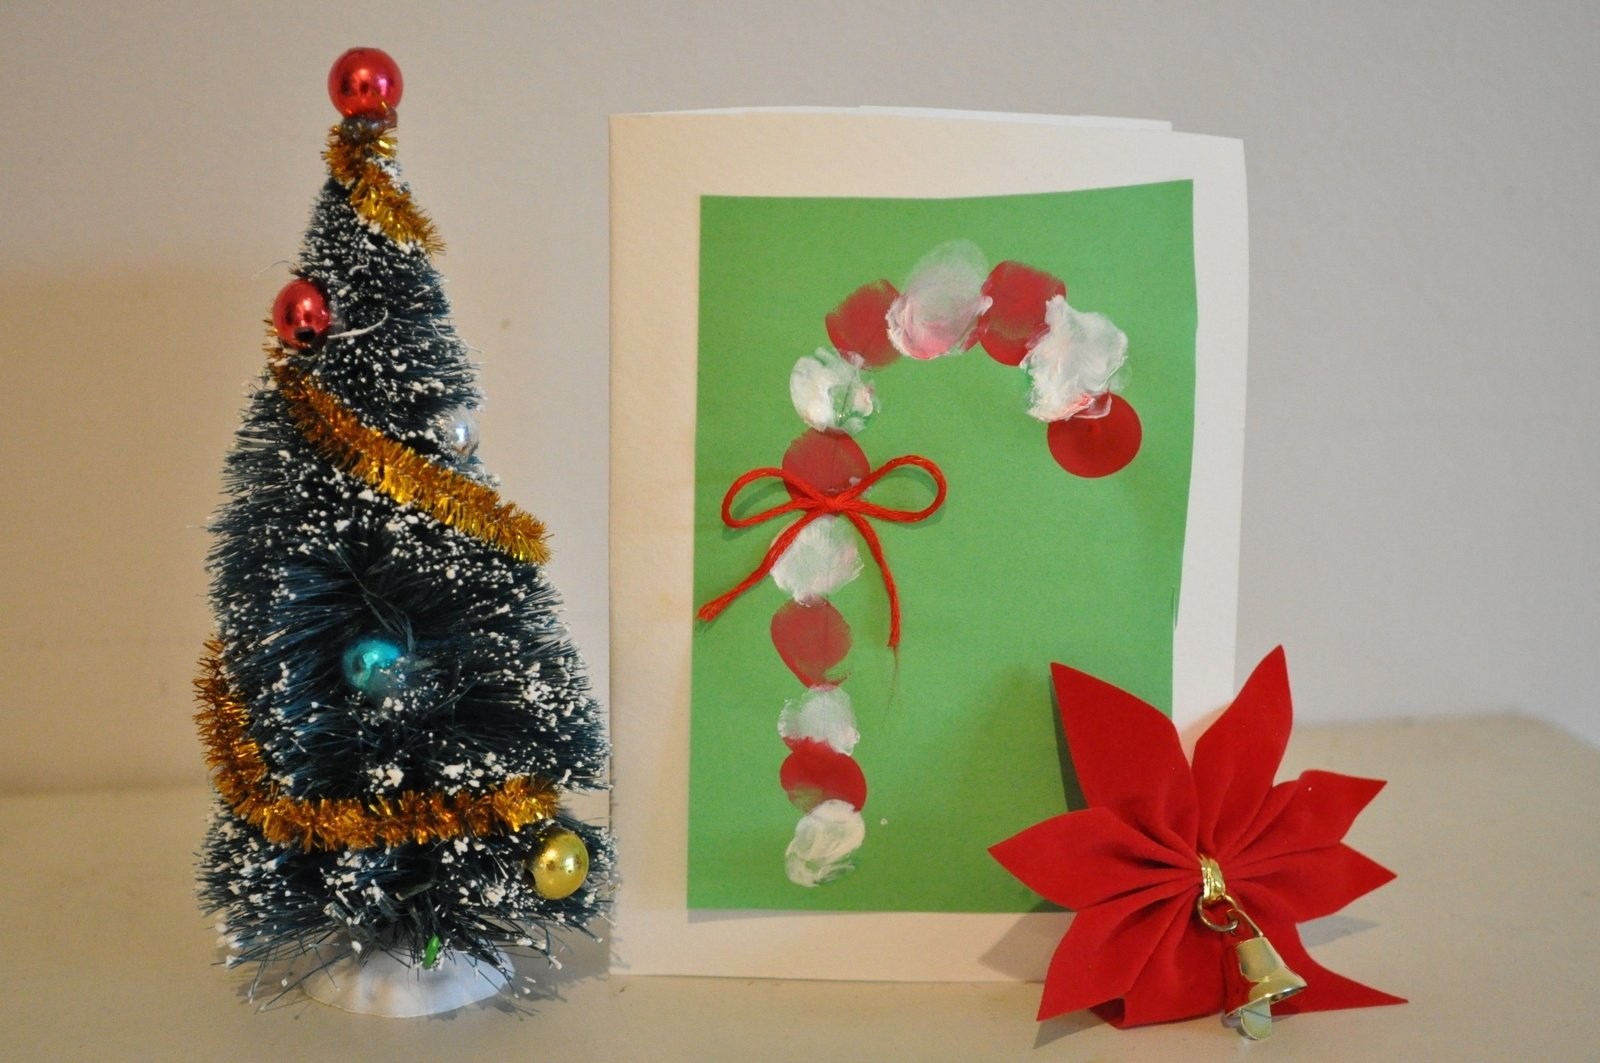 10 Attractive Christmas Card Ideas For Kids homemade christmas card ideas to do with kids e280a2 brisbane kids 5 2021